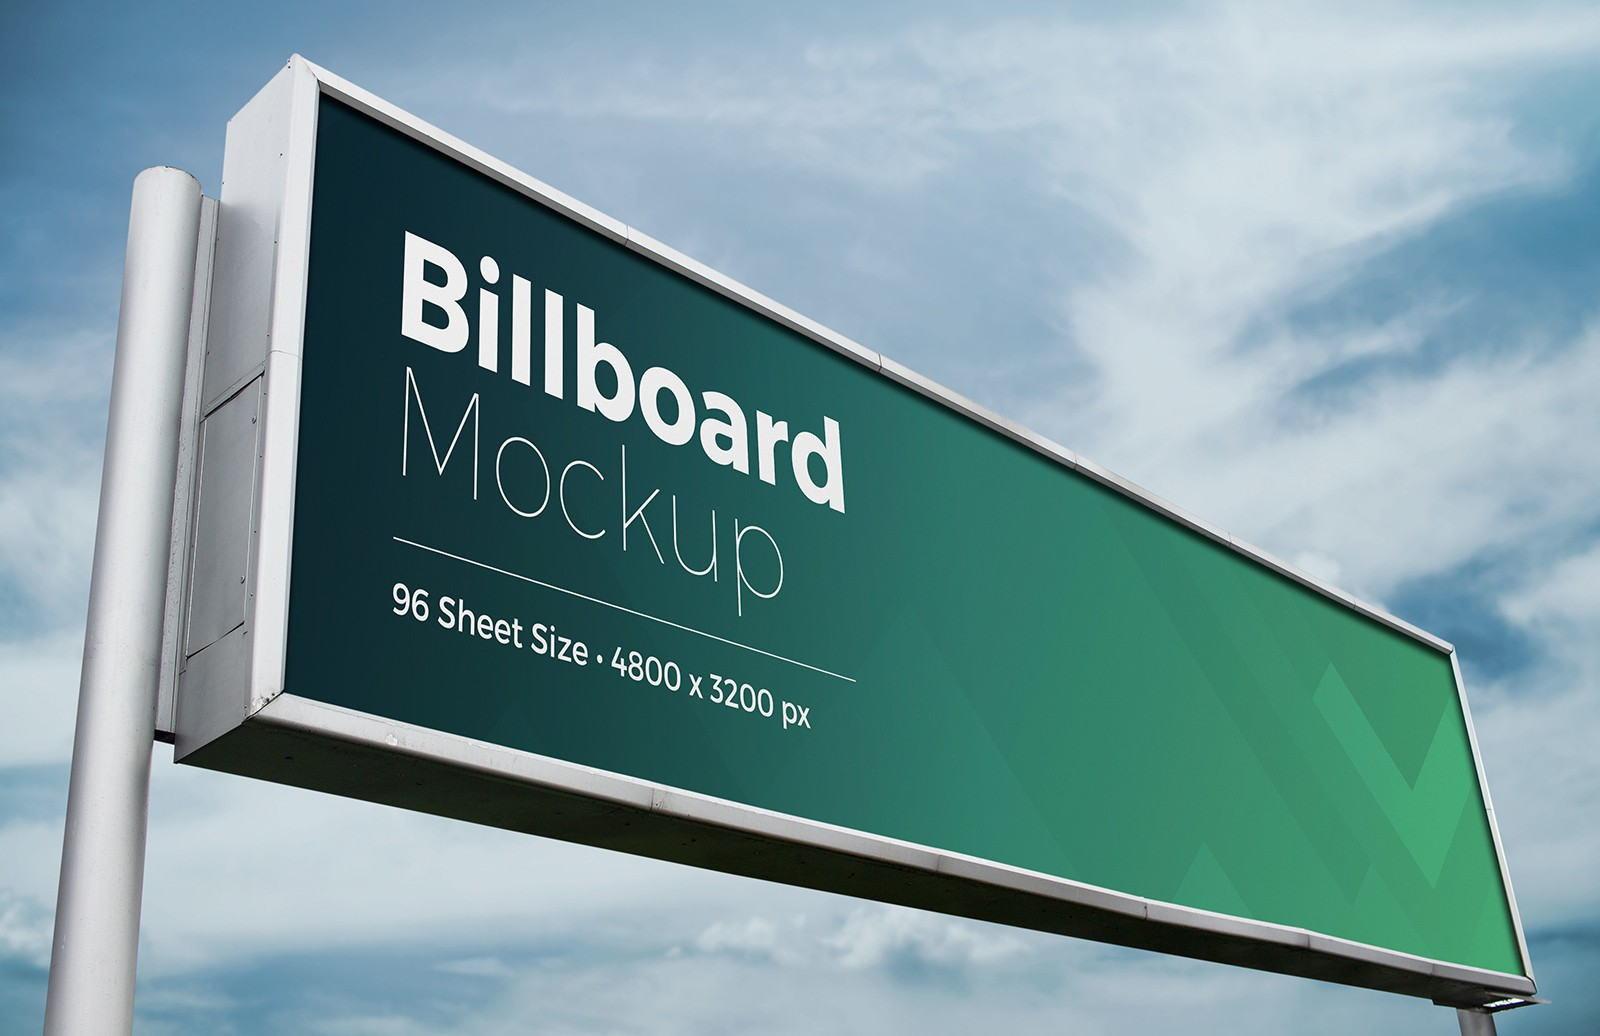 Billboard Mockup for Photoshop